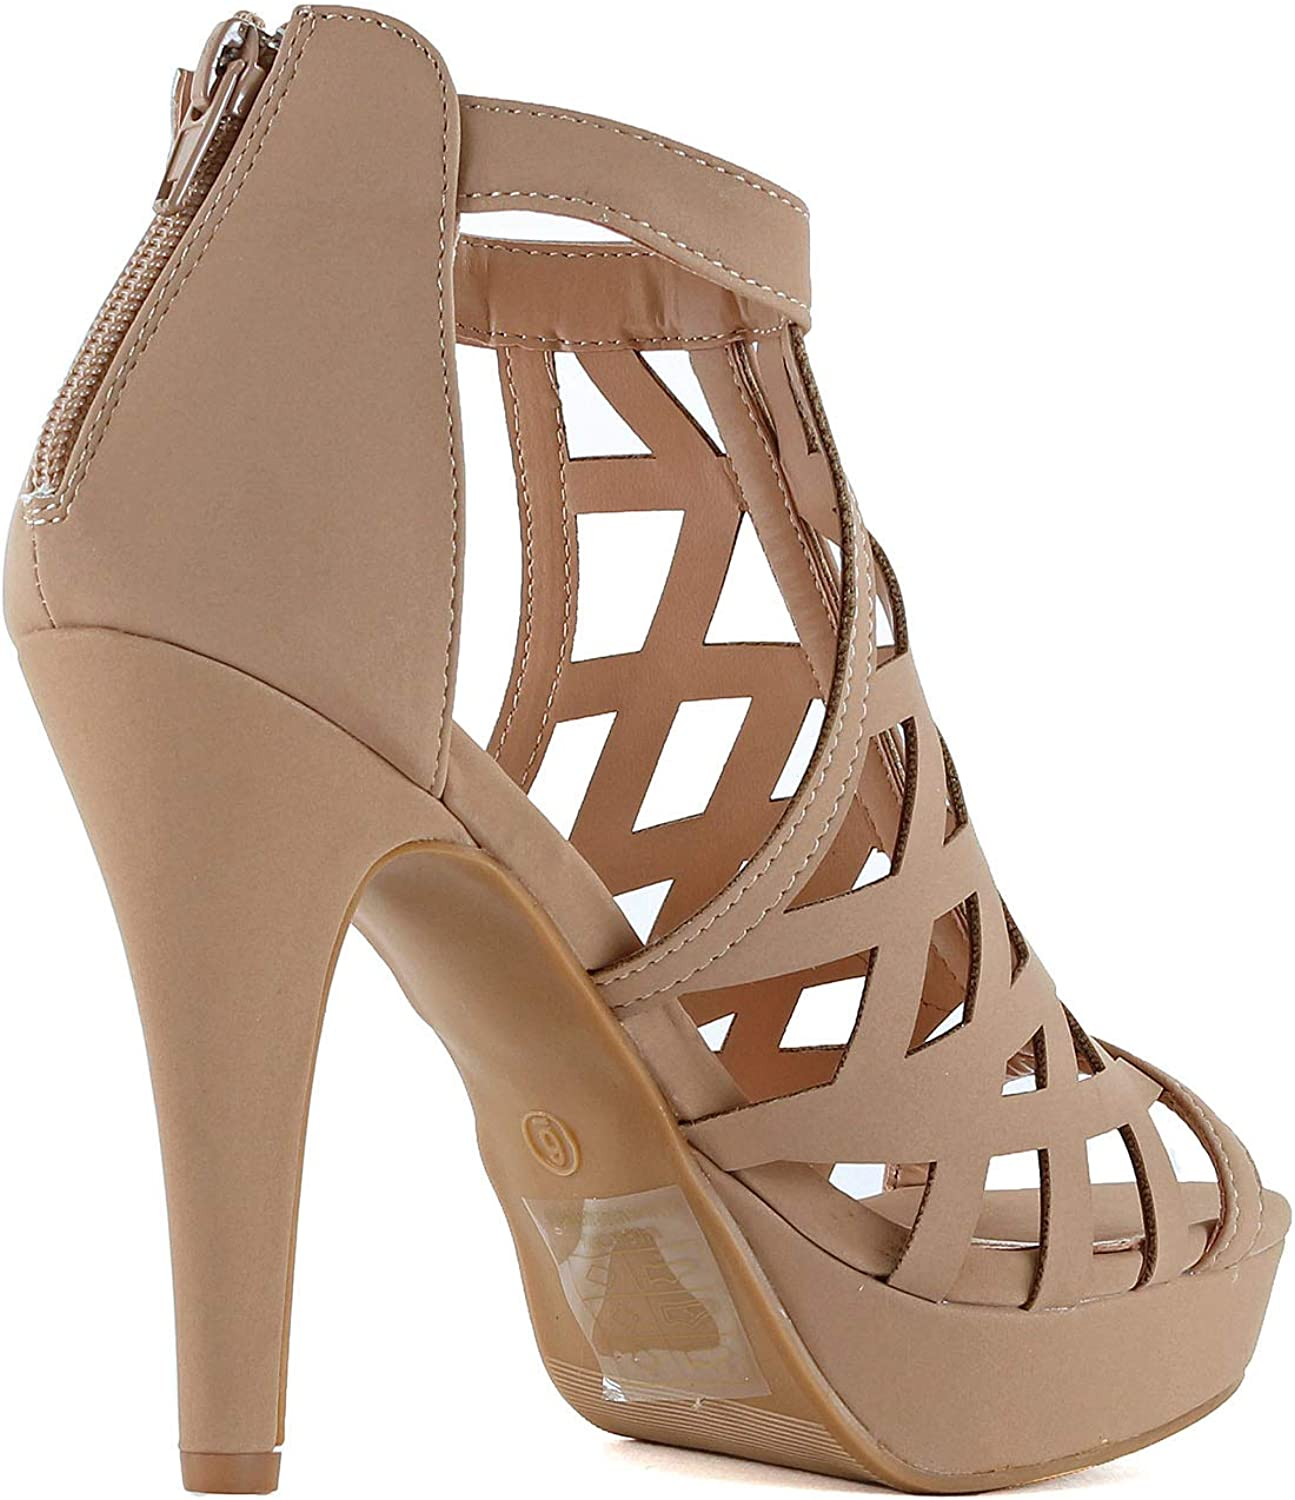 Guilty Shoes Womens Platform Ankle Strap High Heel - Open Toe Sandal Pump - Formal Party Chunky Dress Heel Sandals